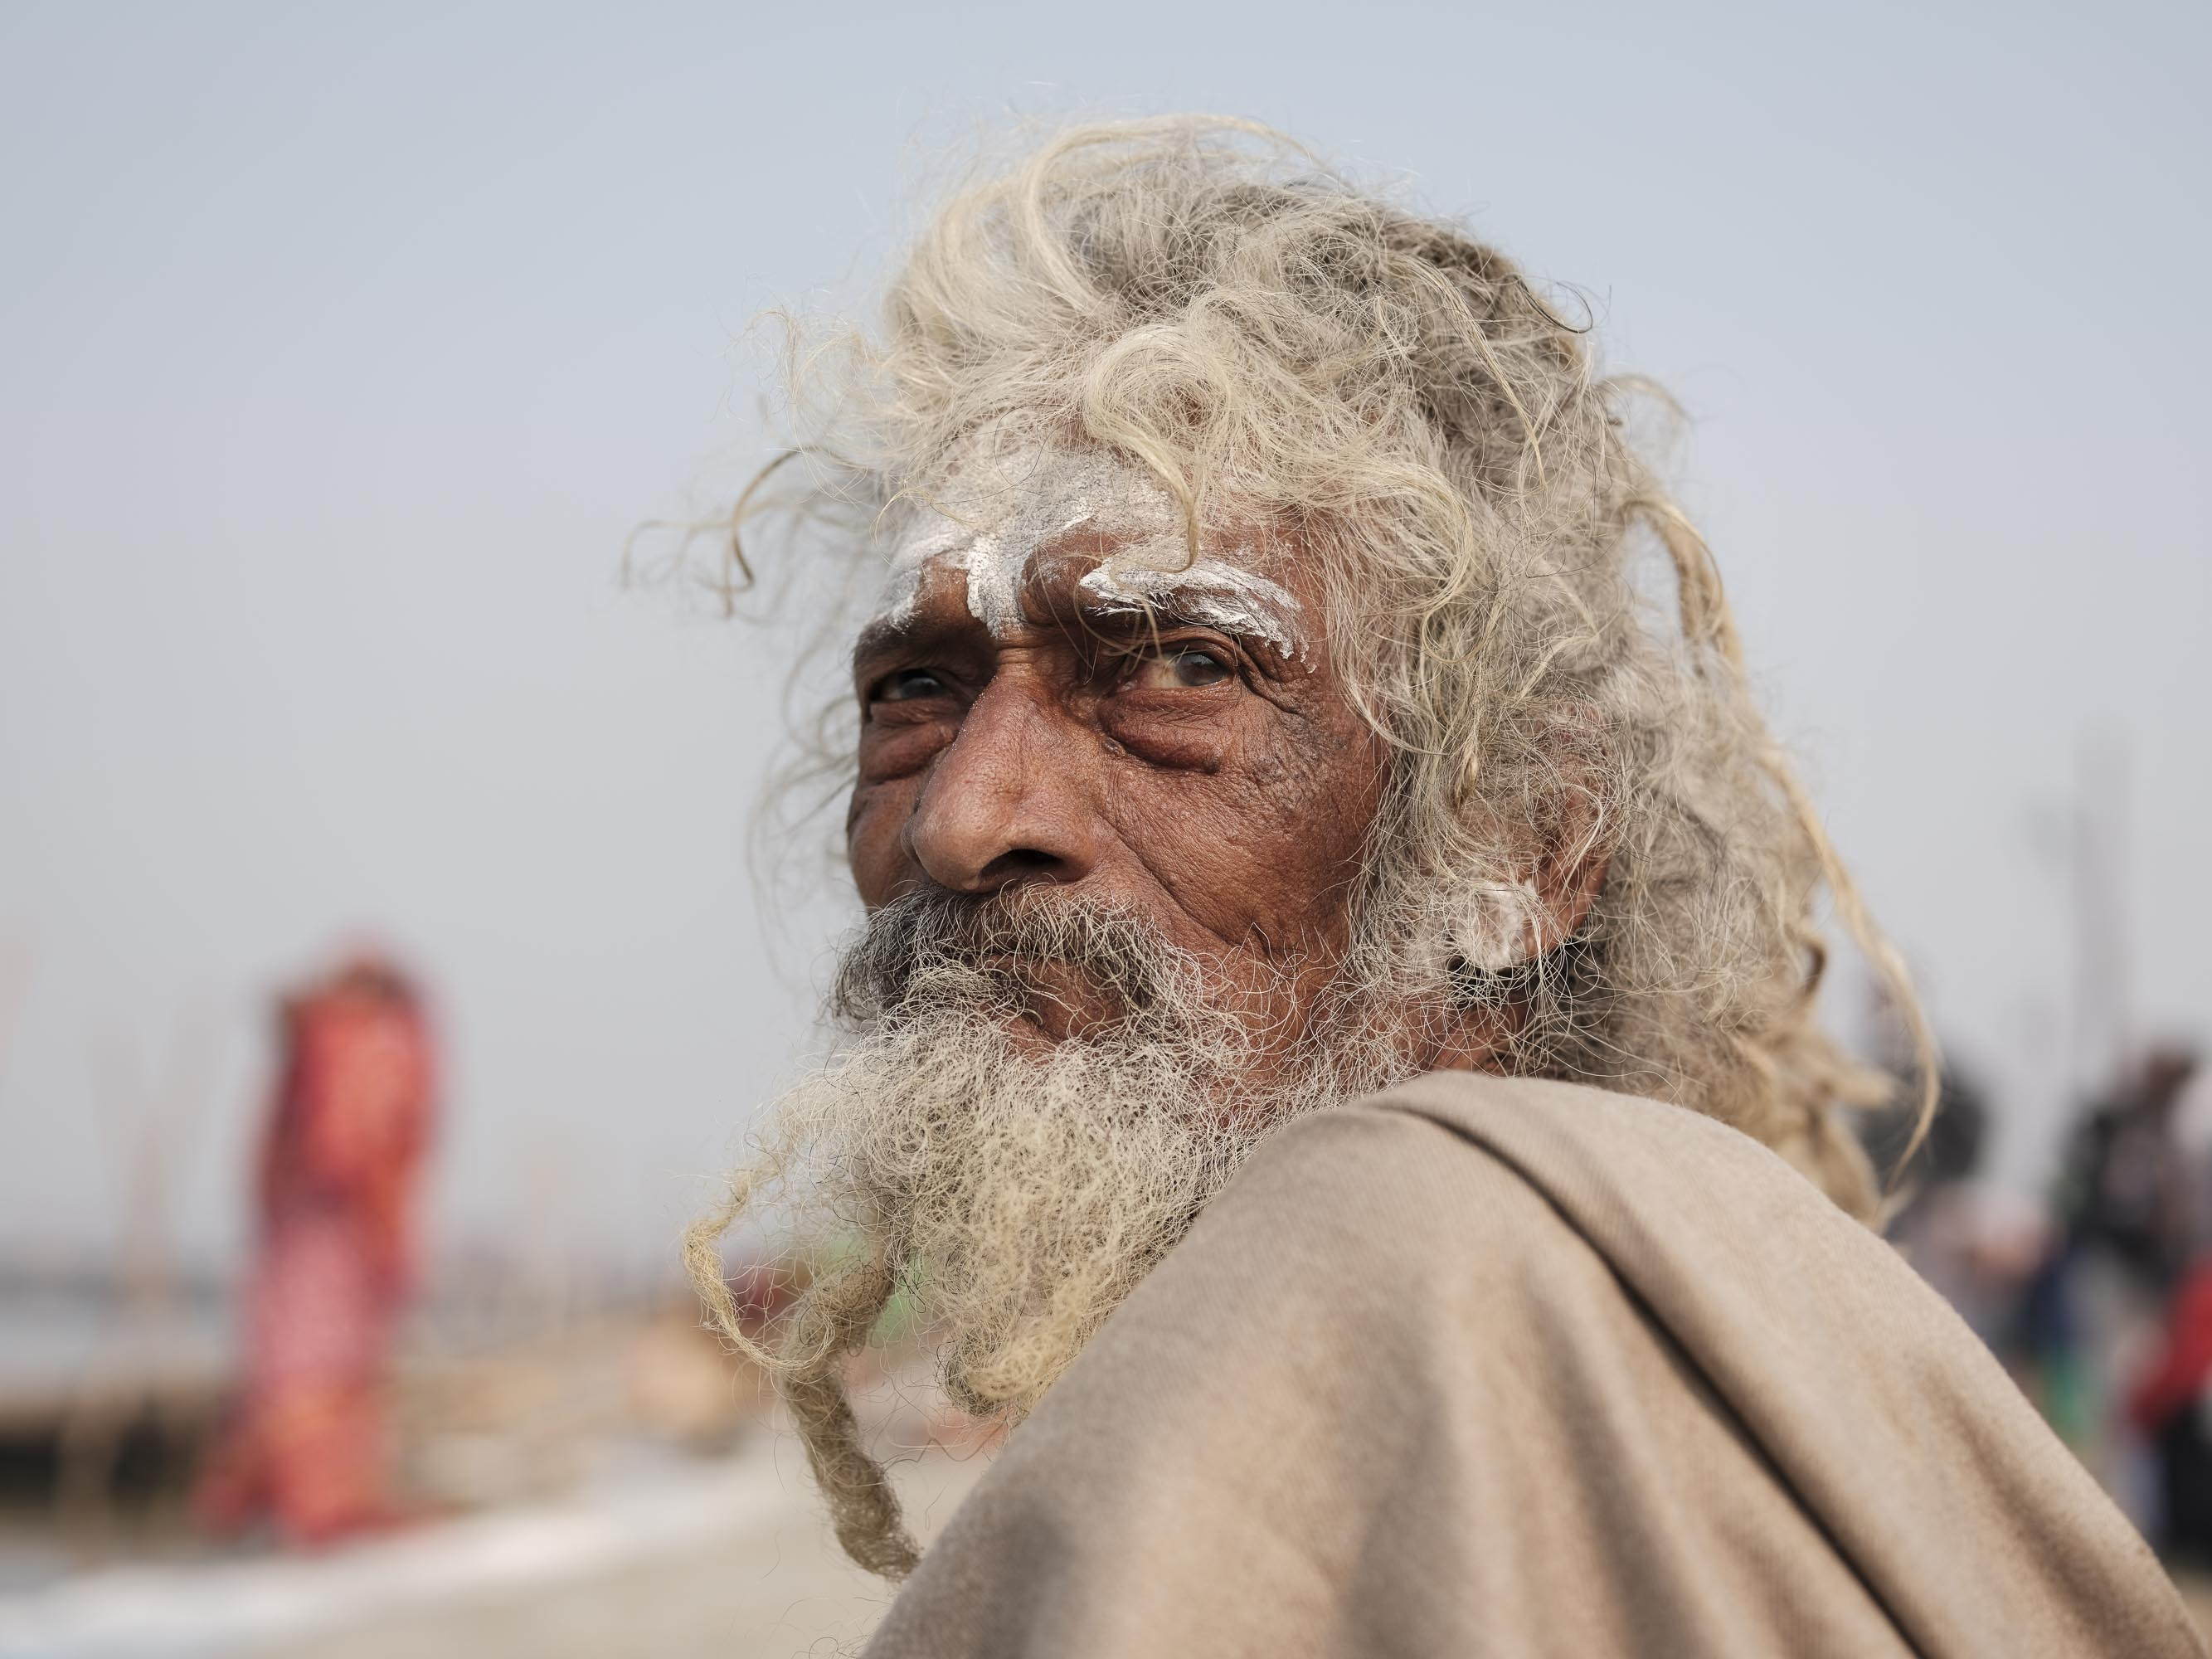 portrait old man after a bath pilgrims Kumbh mela 2019 India Allahabad Prayagraj Ardh hindu religious Festival event rivers photographer jose jeuland photography